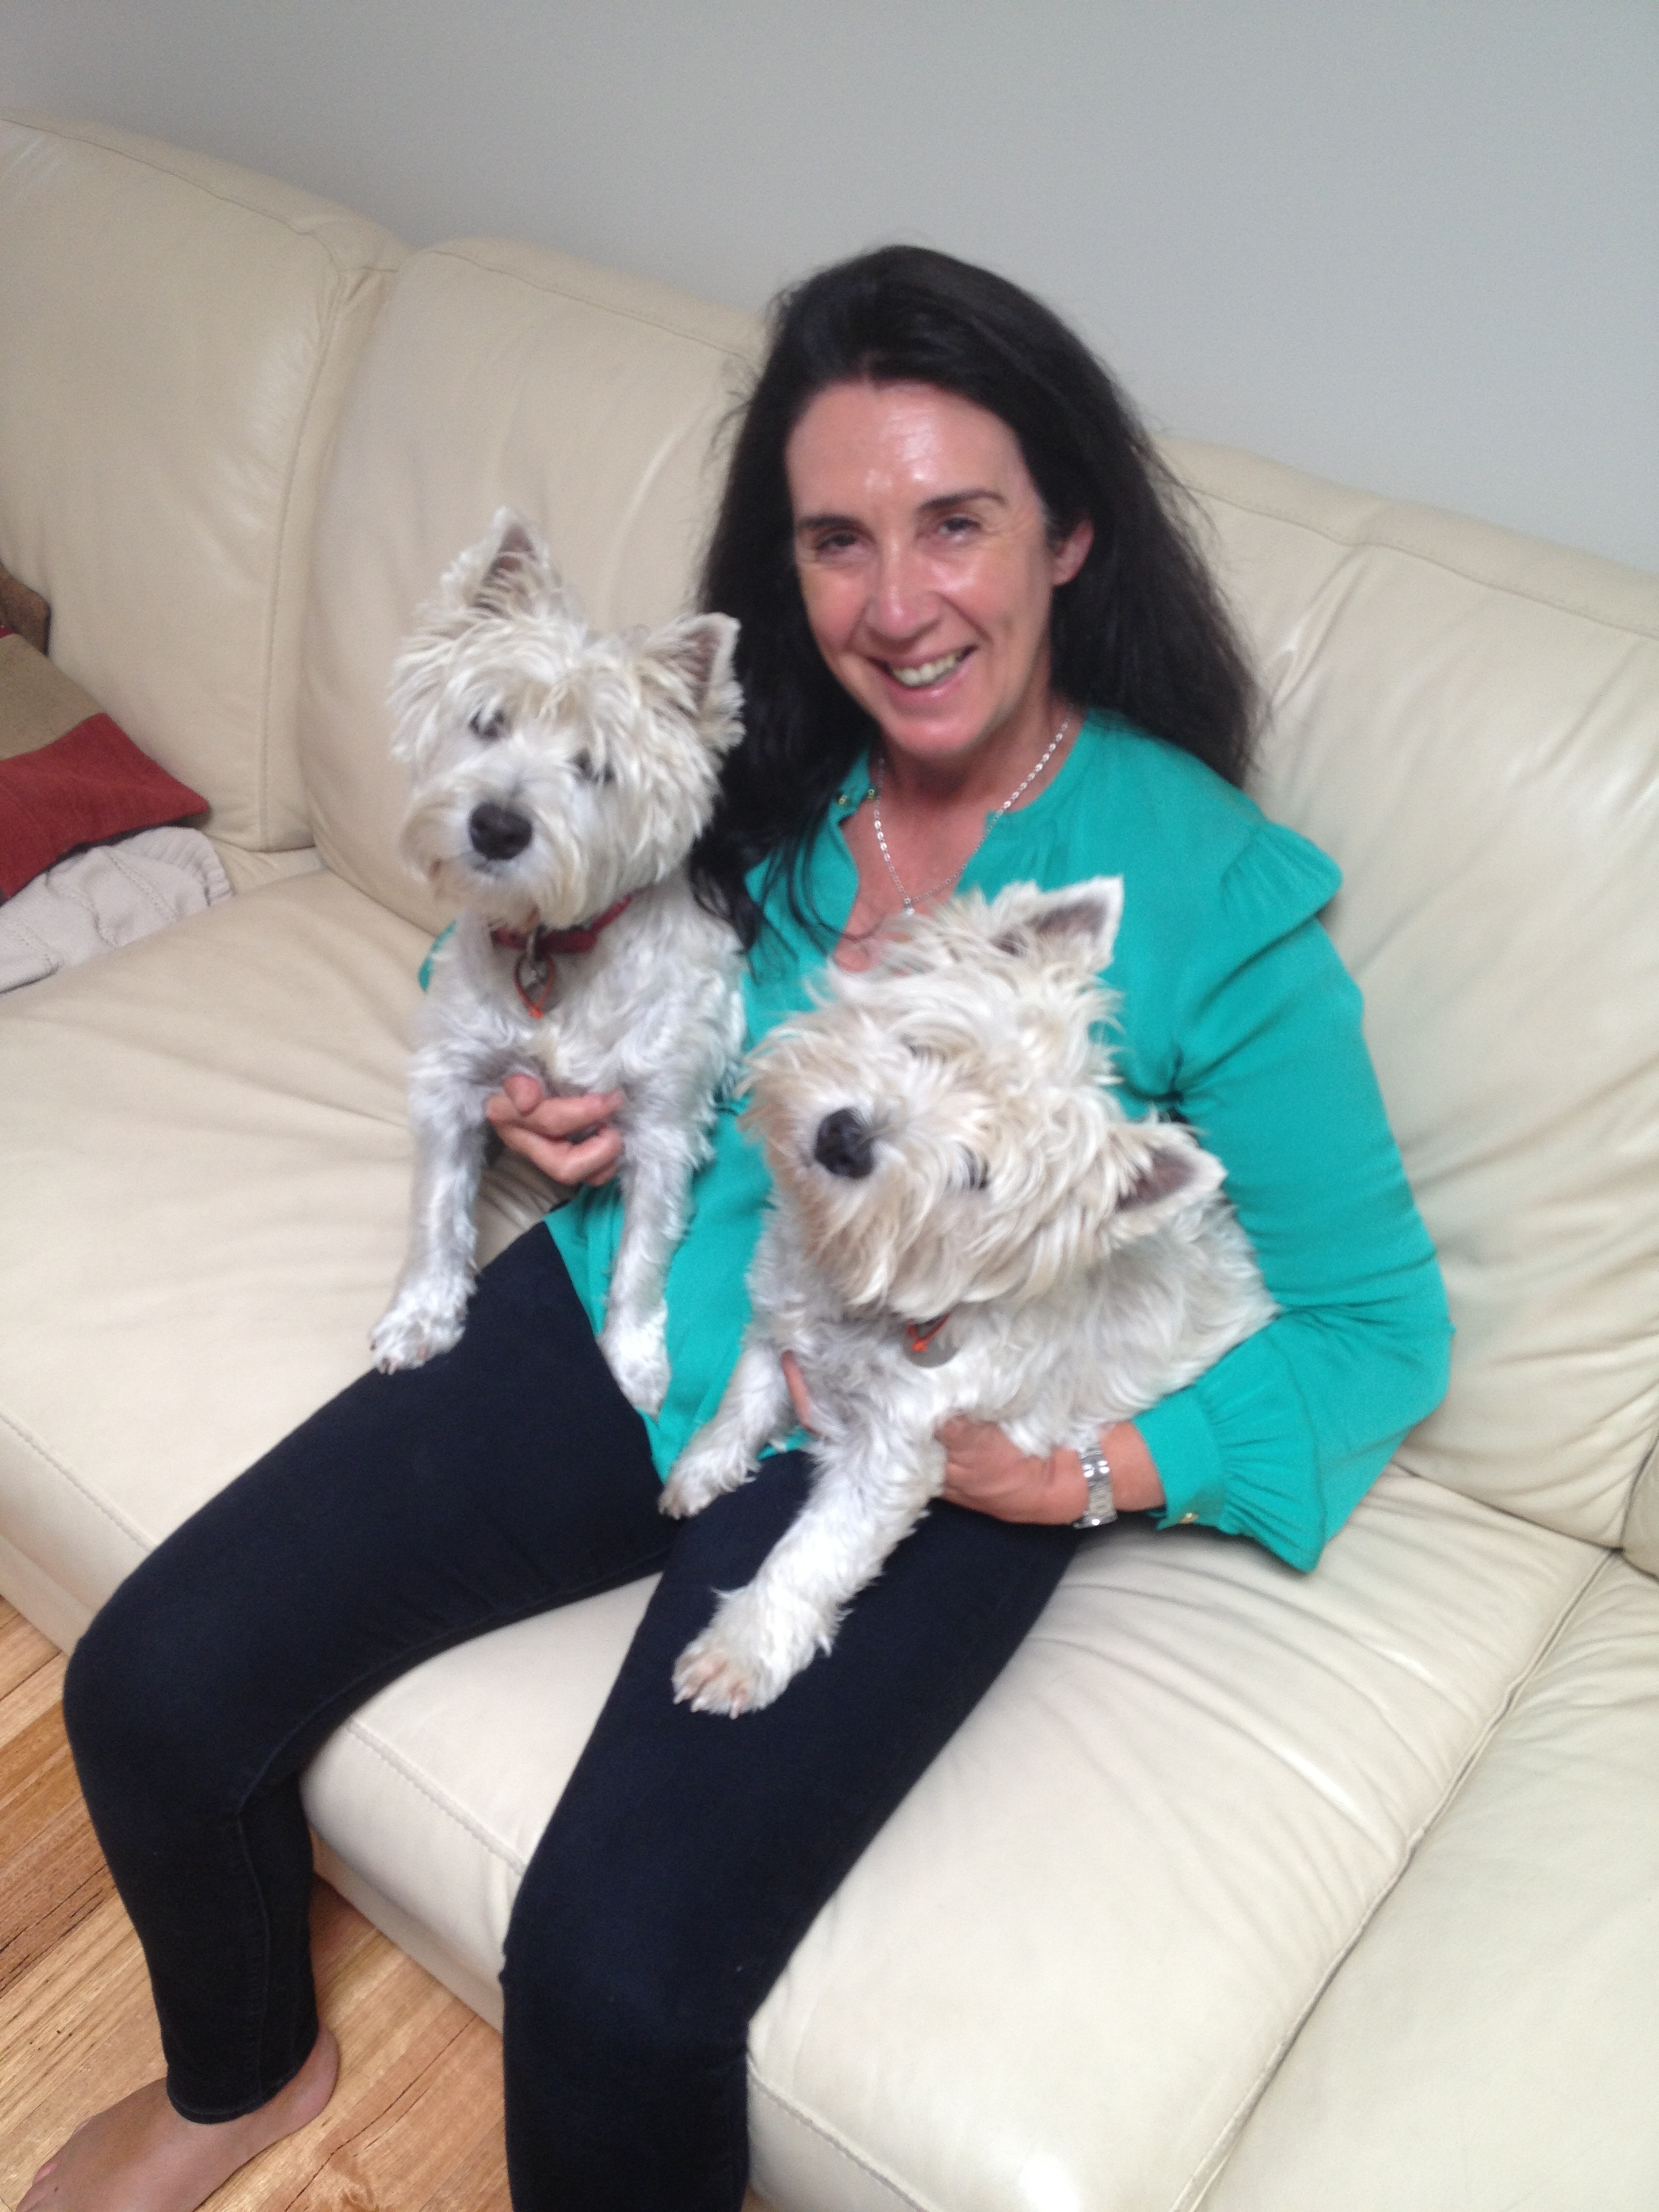 Karolyne - Salon Owner - Interests - Our vegetable garden, travel and learning new languages. My passion is our westies!